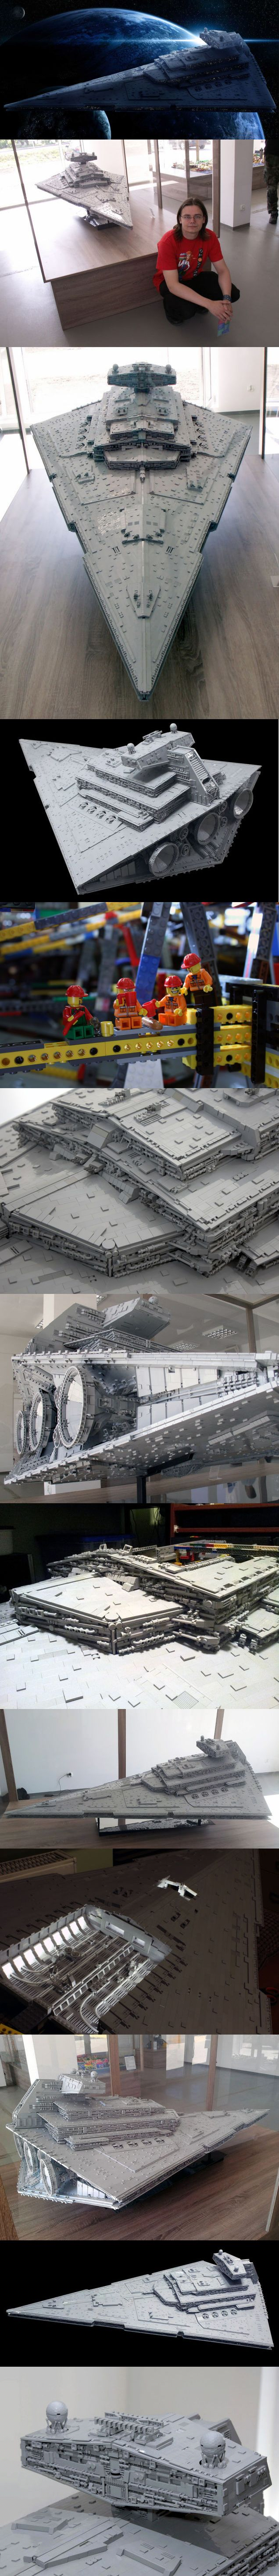 The biggest, most accurate Lego Imperial Star Destroyer ever built More than 40,000 bricks. 110 pounds (50 kilograms). 6.62 feet long (2.02 meters). 4.1 feet wide (1.25 meters). 1.9 feet tall (58 centimeters). Eight months of design and building. Those are the stats for the biggest, most accurate Lego Imperial Star Destroyer ever built.  ;-)~❤~